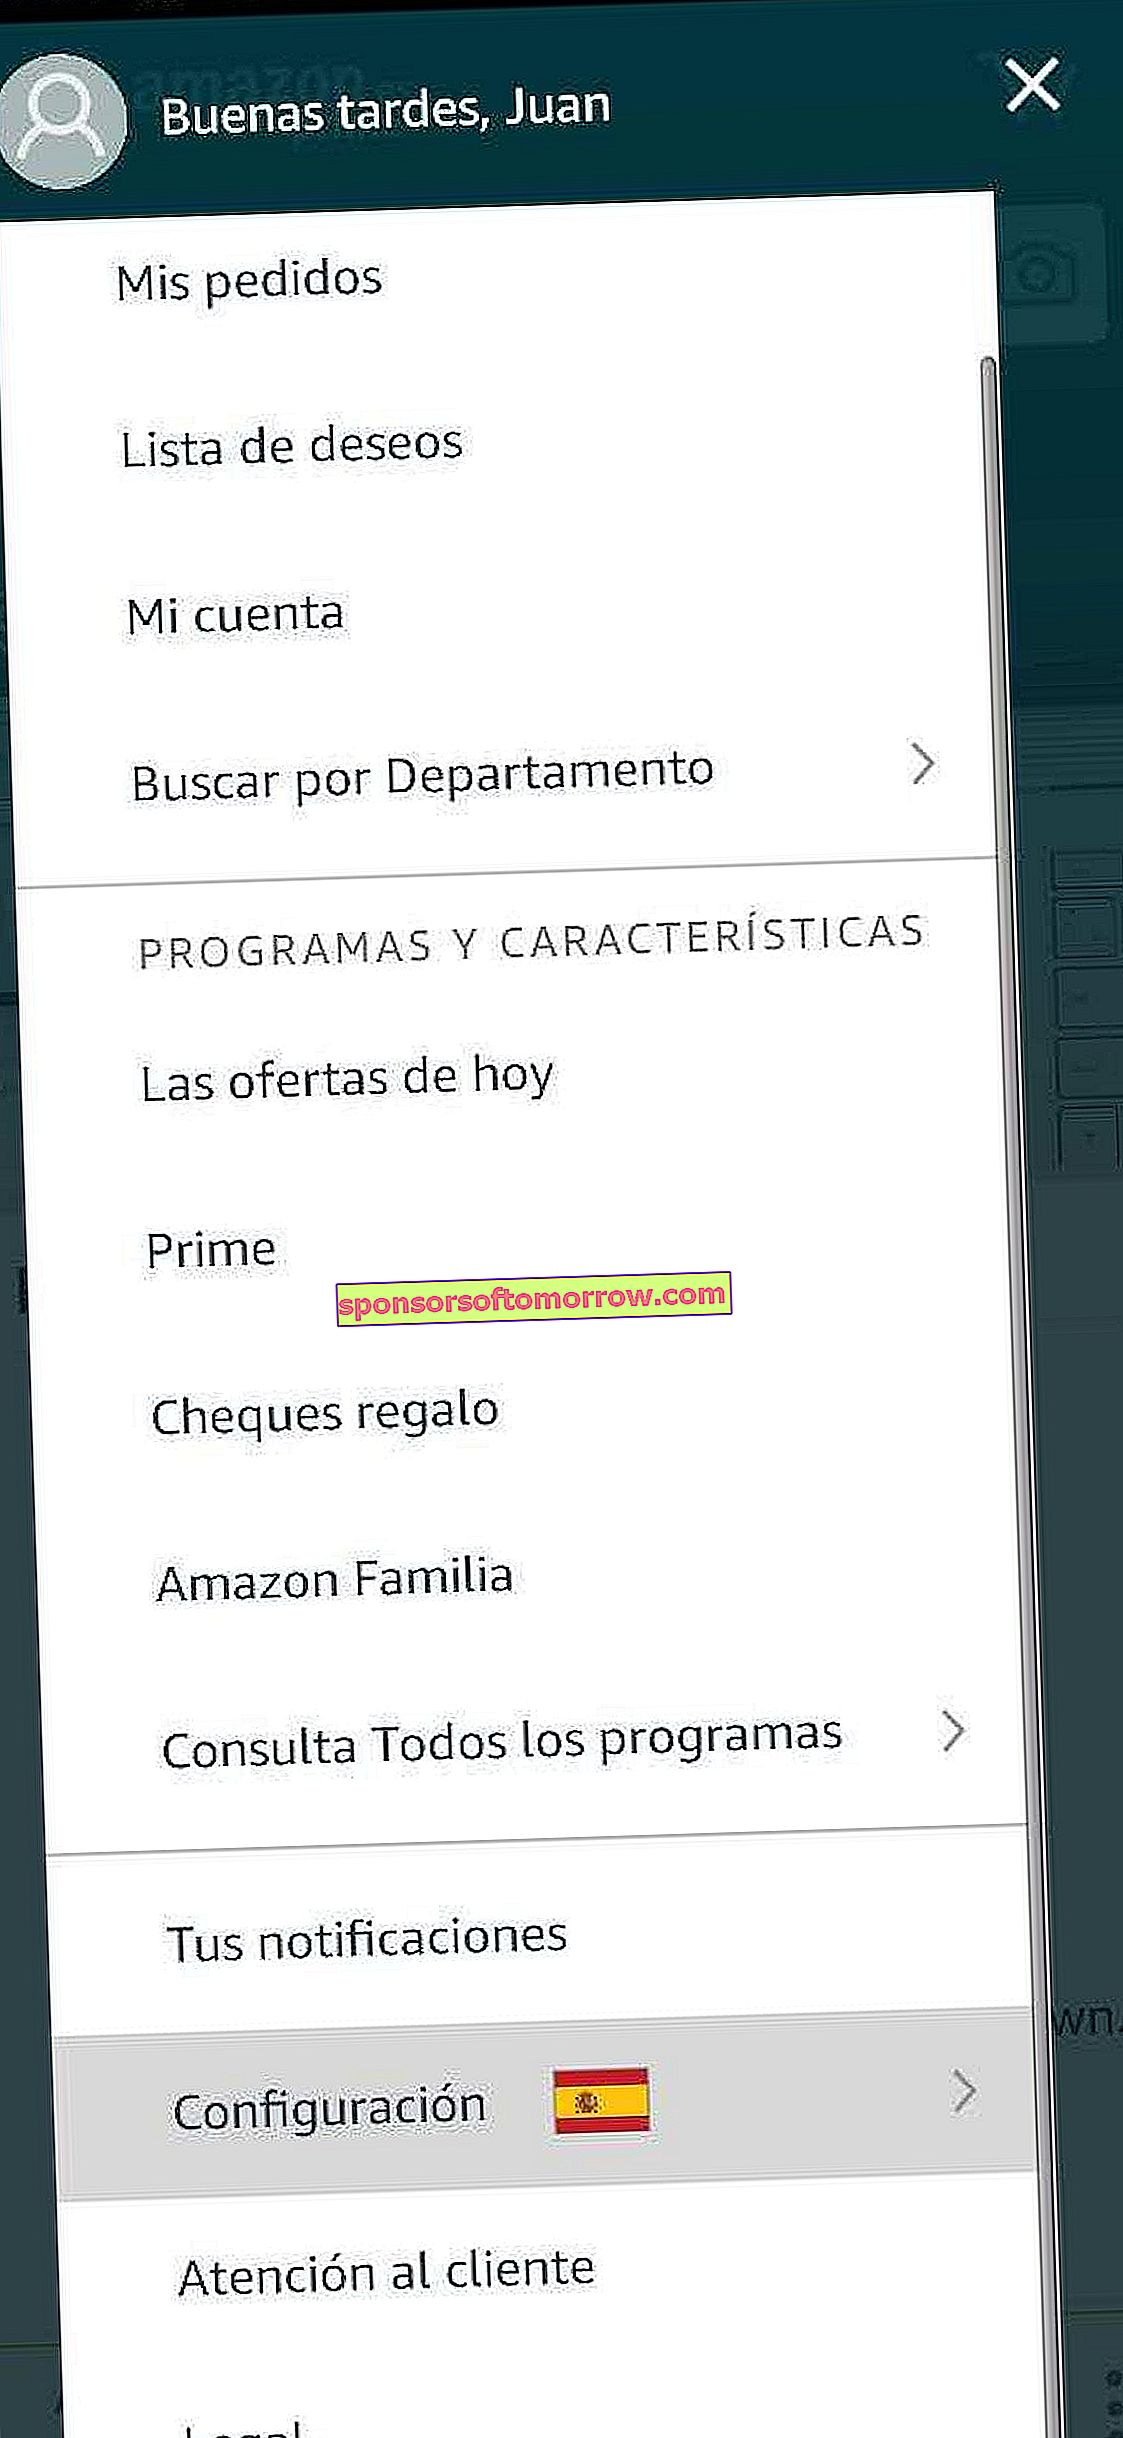 buy amazon USA from Spain 2